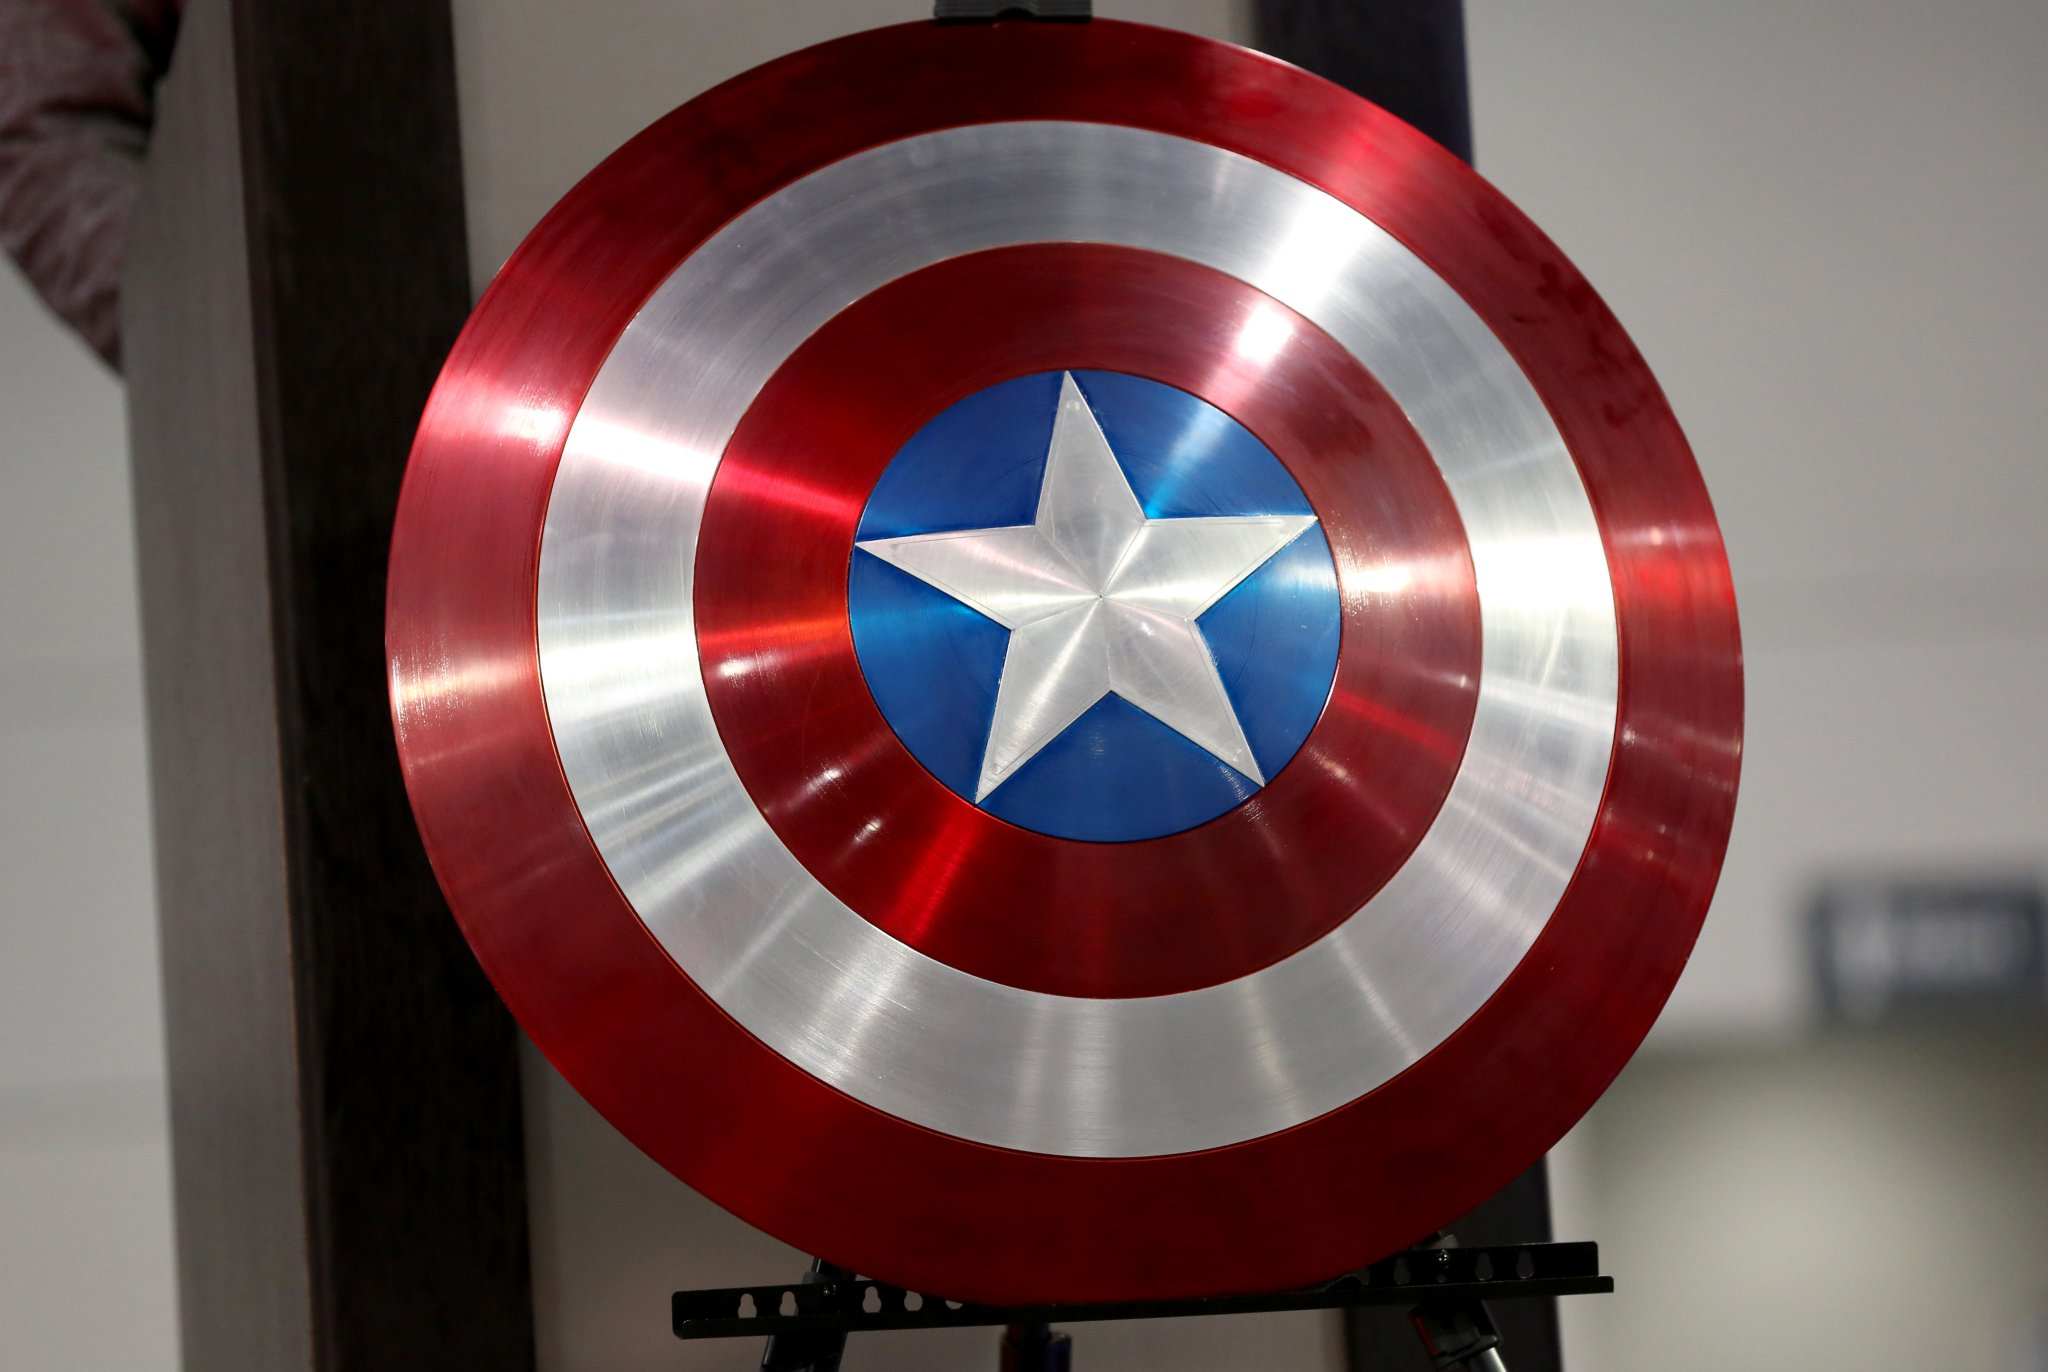 Captain America creator's son hits out at Capitol mobs use of superhero imagery Photo